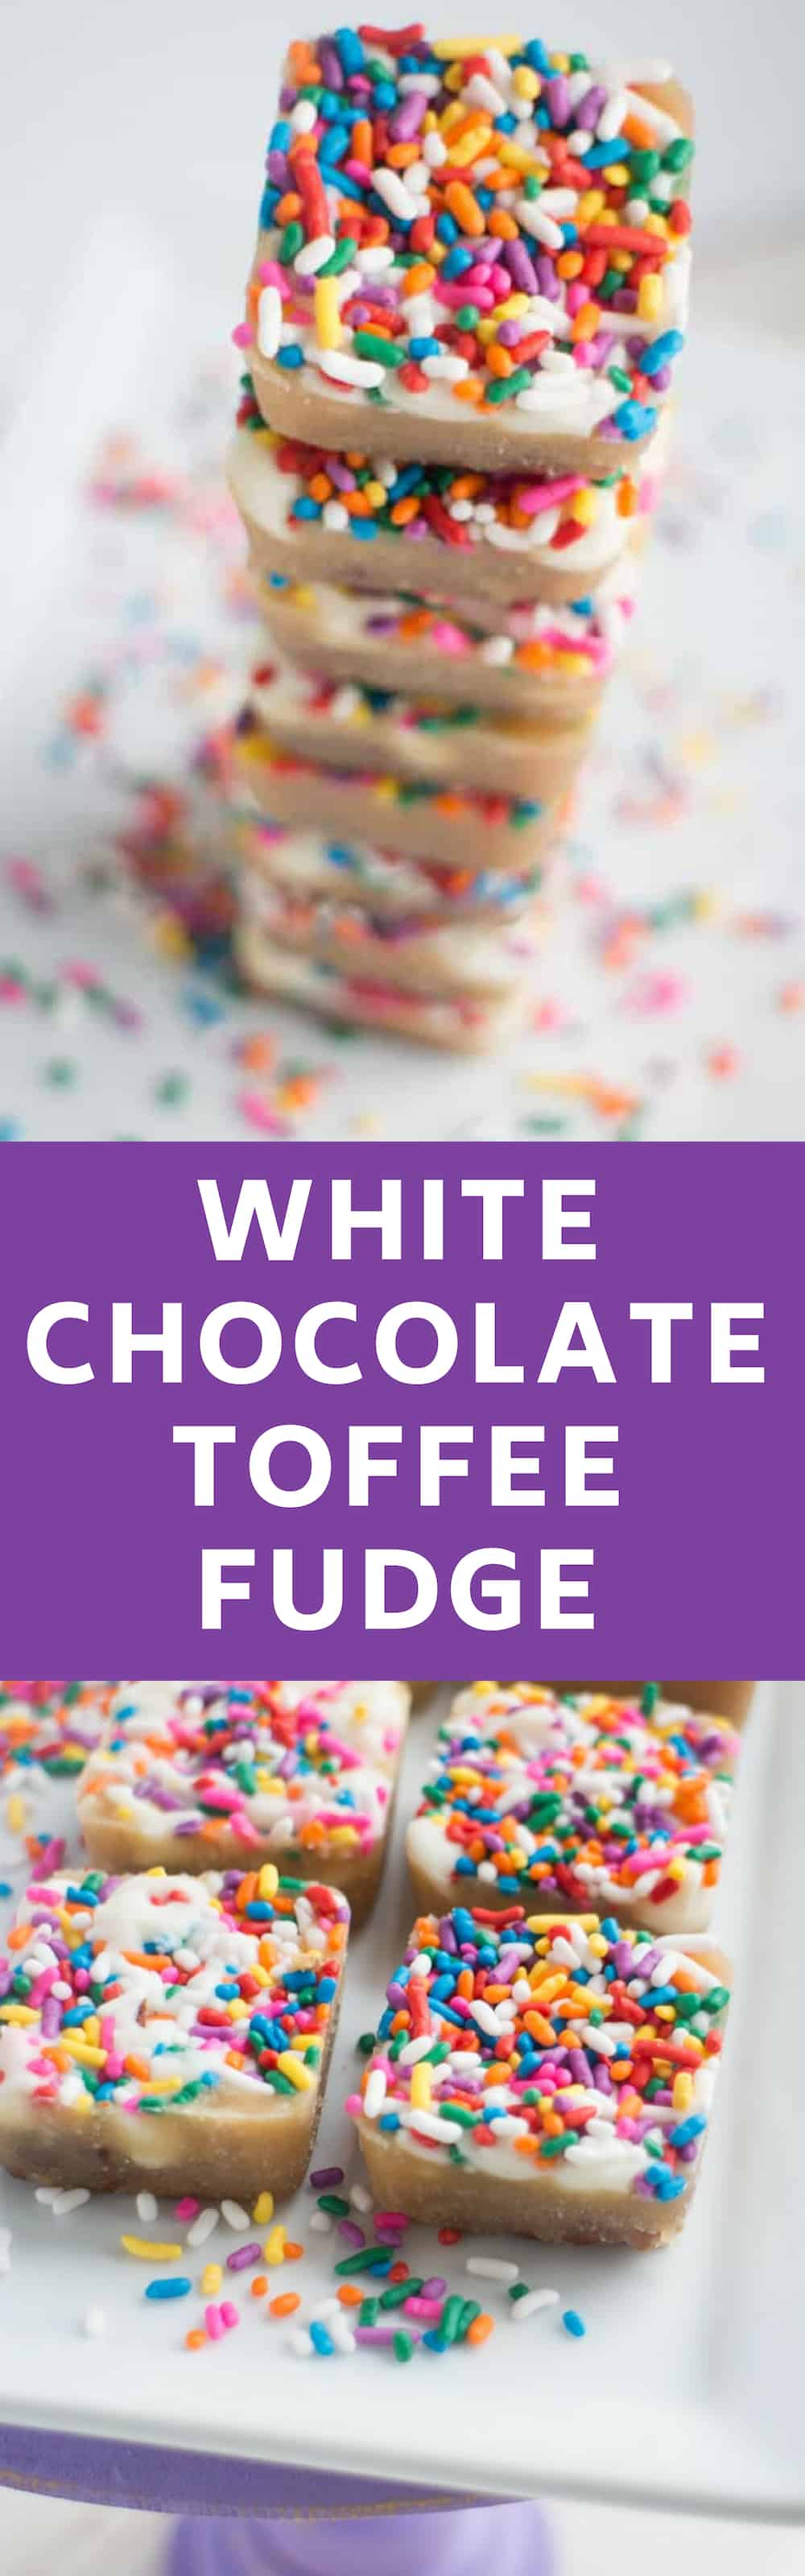 EASY White Chocolate Toffee Recipe with rainbow sprinkles! This tastes just like vanilla fudge! You're going to love this sticky homemade candy that has a base of crushed up pecans. Cut into squares or break up into bark!